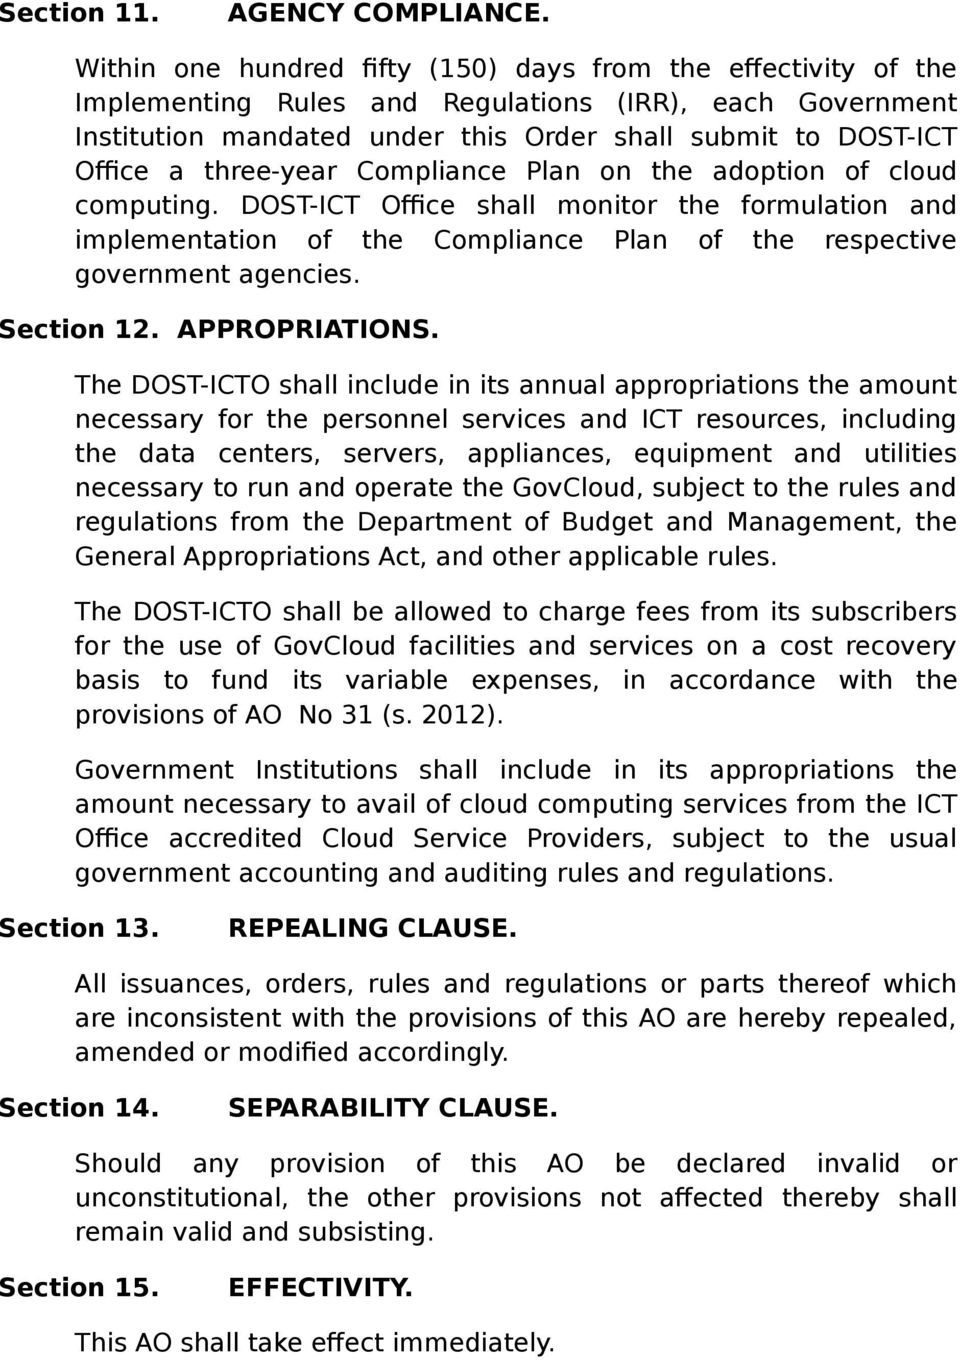 three-year Compliance Plan on the adoption of cloud computing. DOST-ICT Office shall monitor the formulation and implementation of the Compliance Plan of the respective government agencies.